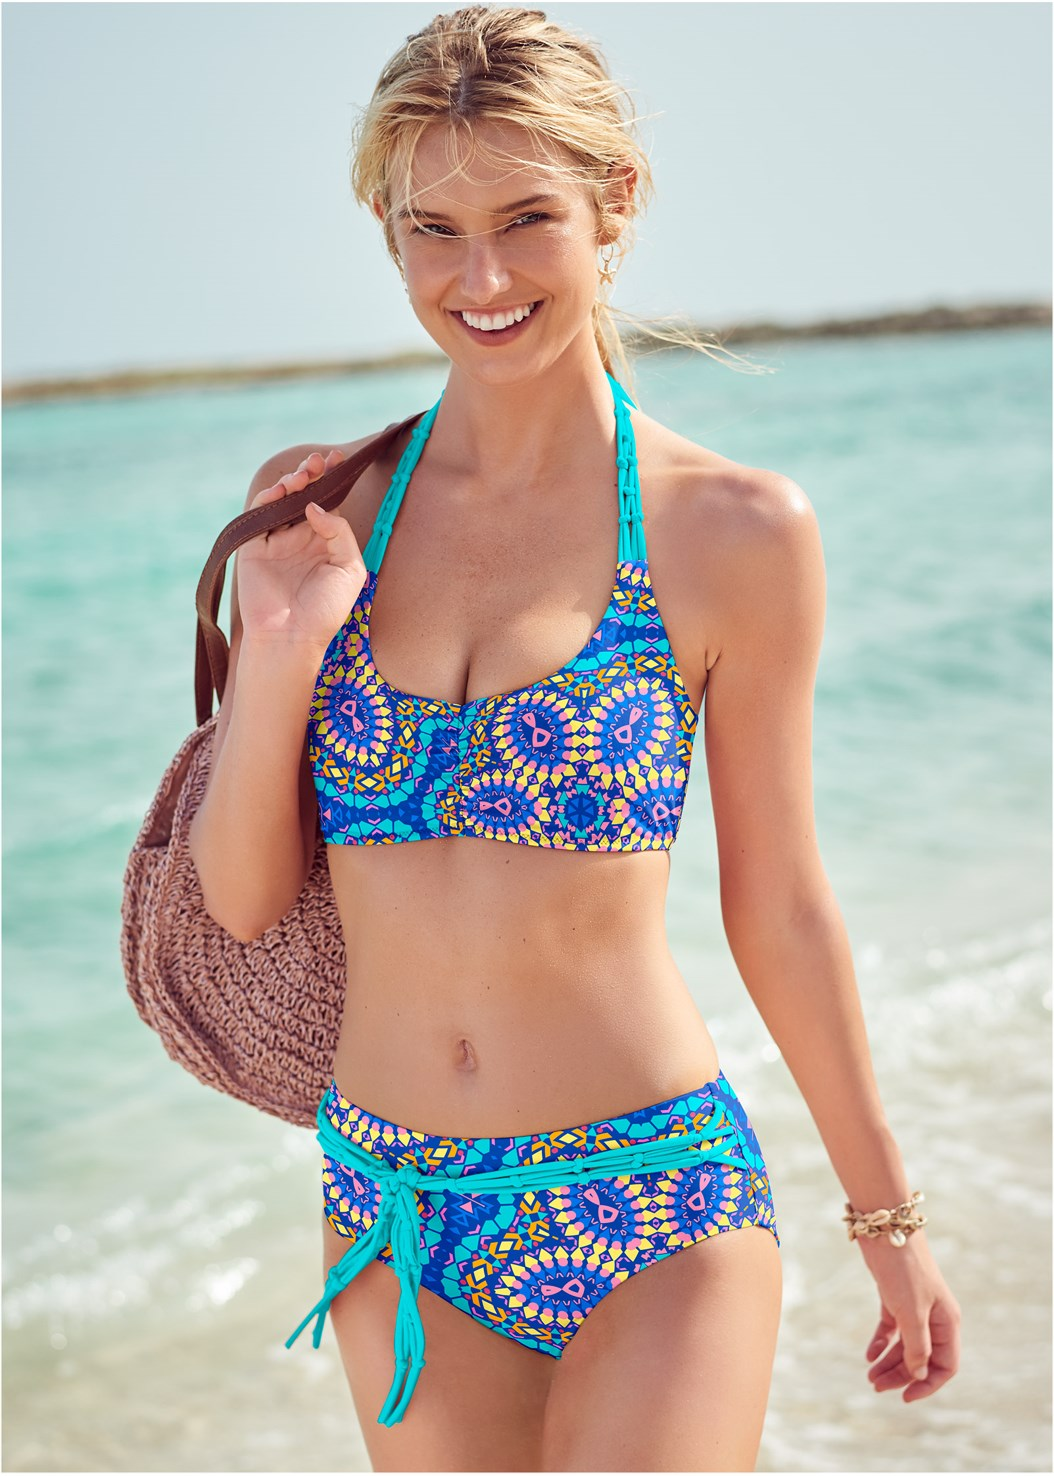 Jamaica Halter Top,Jamaica Belted Bottom,Jamaican Low Rise Bottom,Jamaica High Waist Bottom,Knotted Crochet Cover-Up